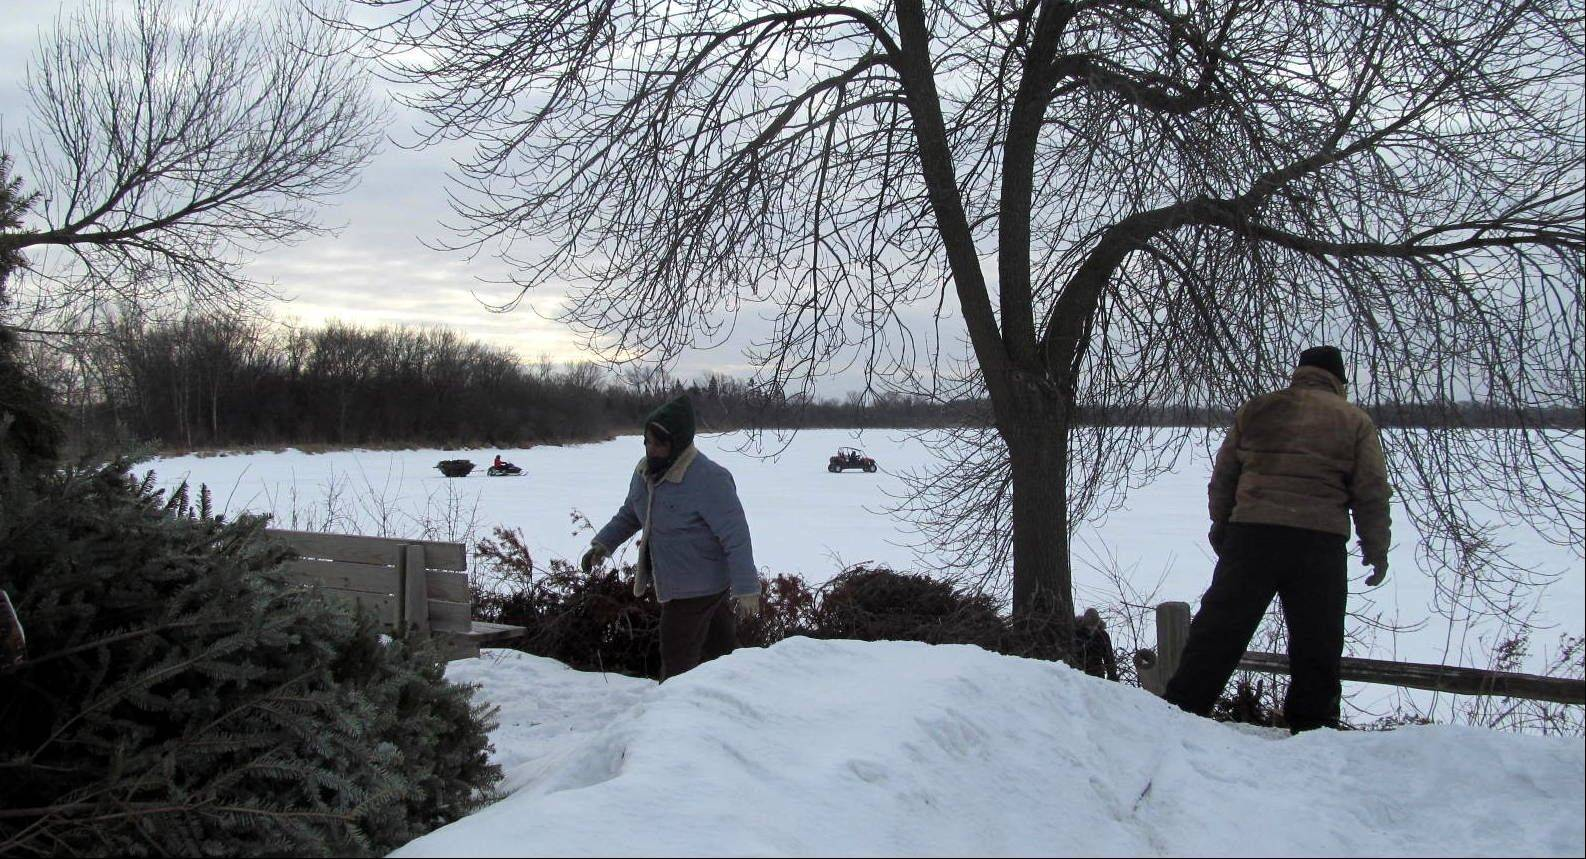 CFC volunteers freshen the nesting sites on Baker's Lake Island with discarded live Christmas trees from Barrington. Eighty to 100 trees were taken across the ice to the island.